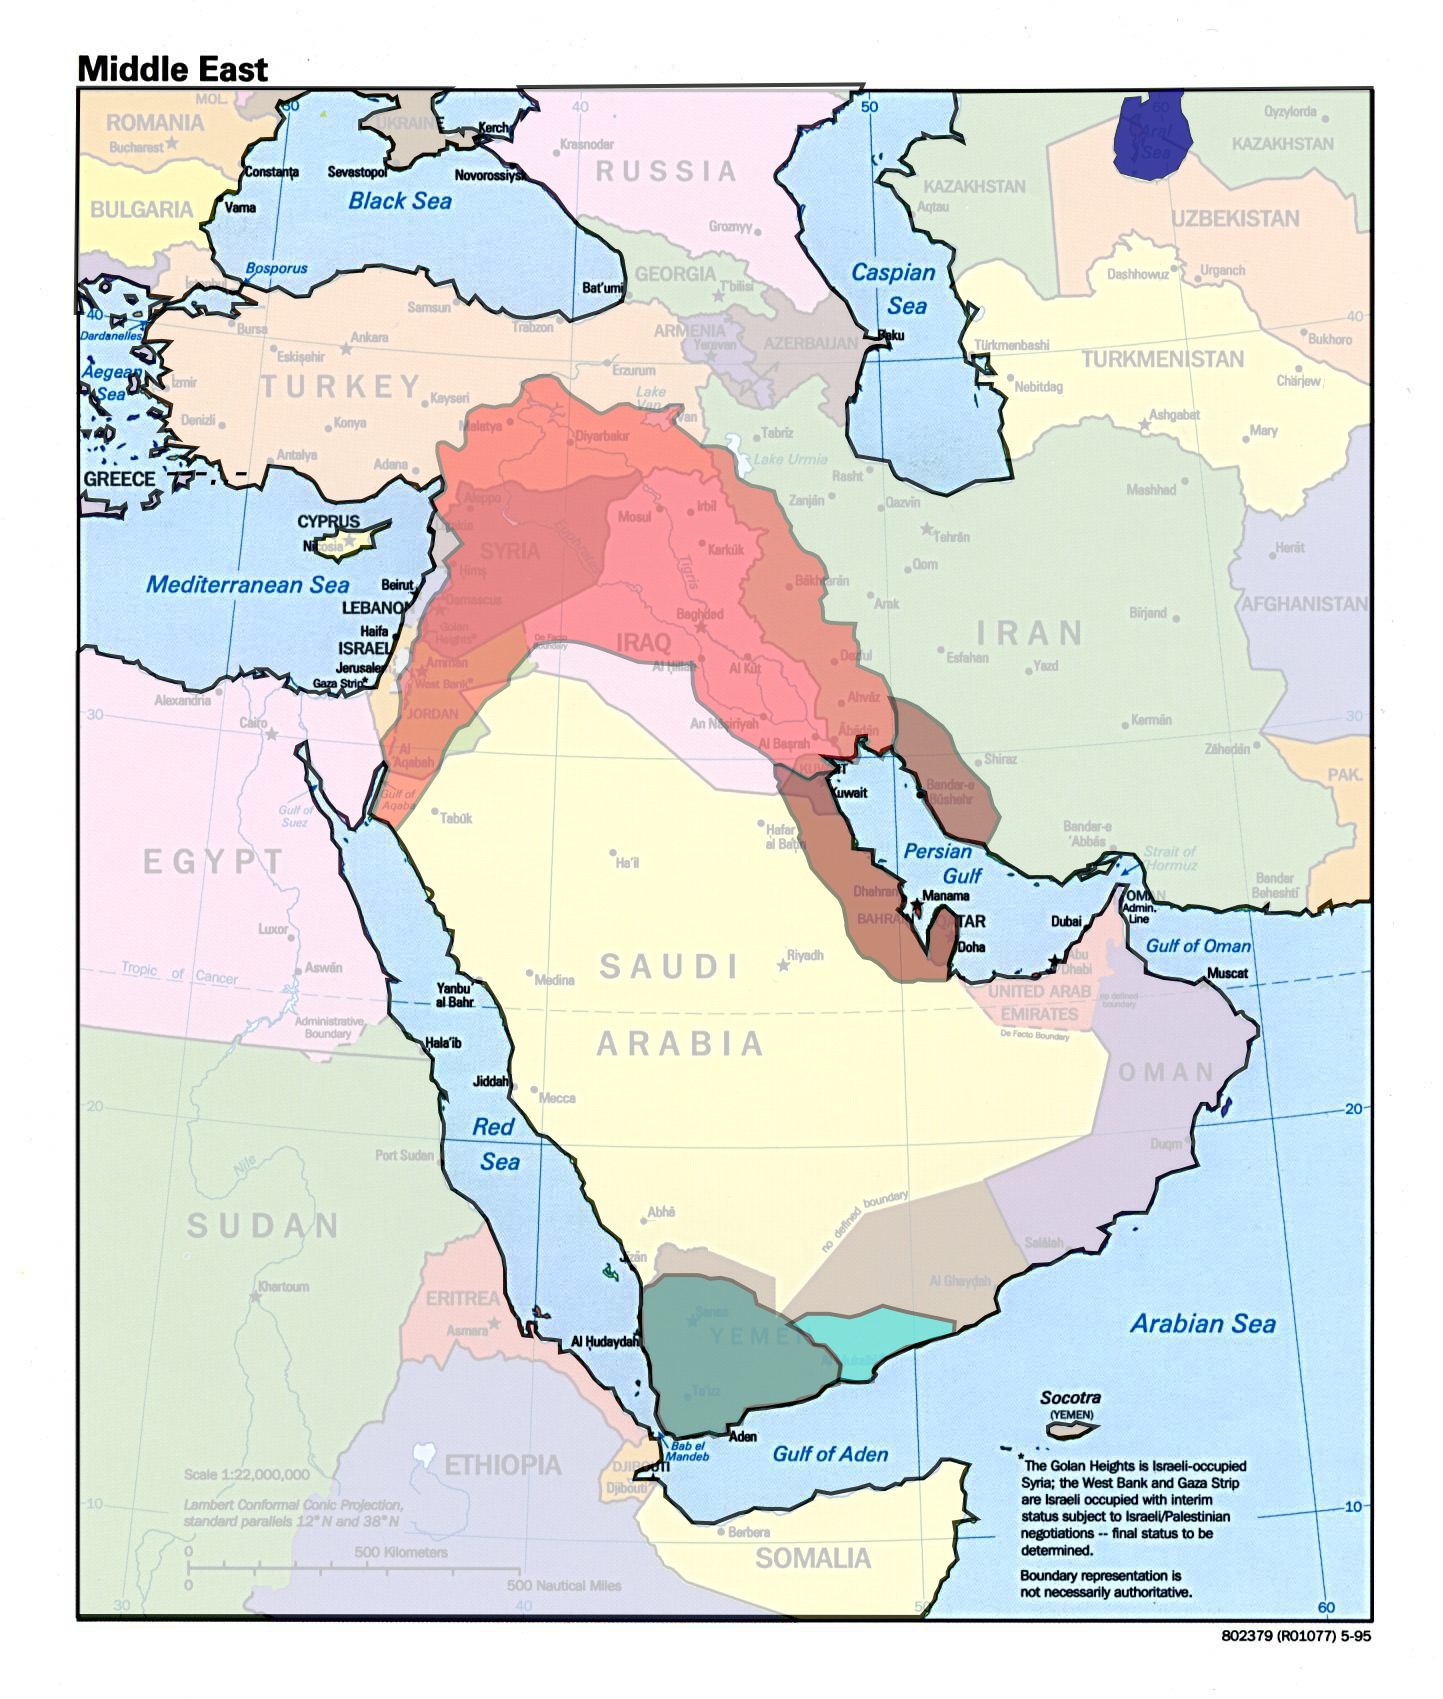 middle eastern history Middle eastern history topics (selfmiddleeasthistory) submitted 3 years ago by archehoe hey guys i am from a middle eastern background (specifically pakistan, although most count it as a sub-asian country is qutie involved with middle east affairs) anyways thats besides the point.